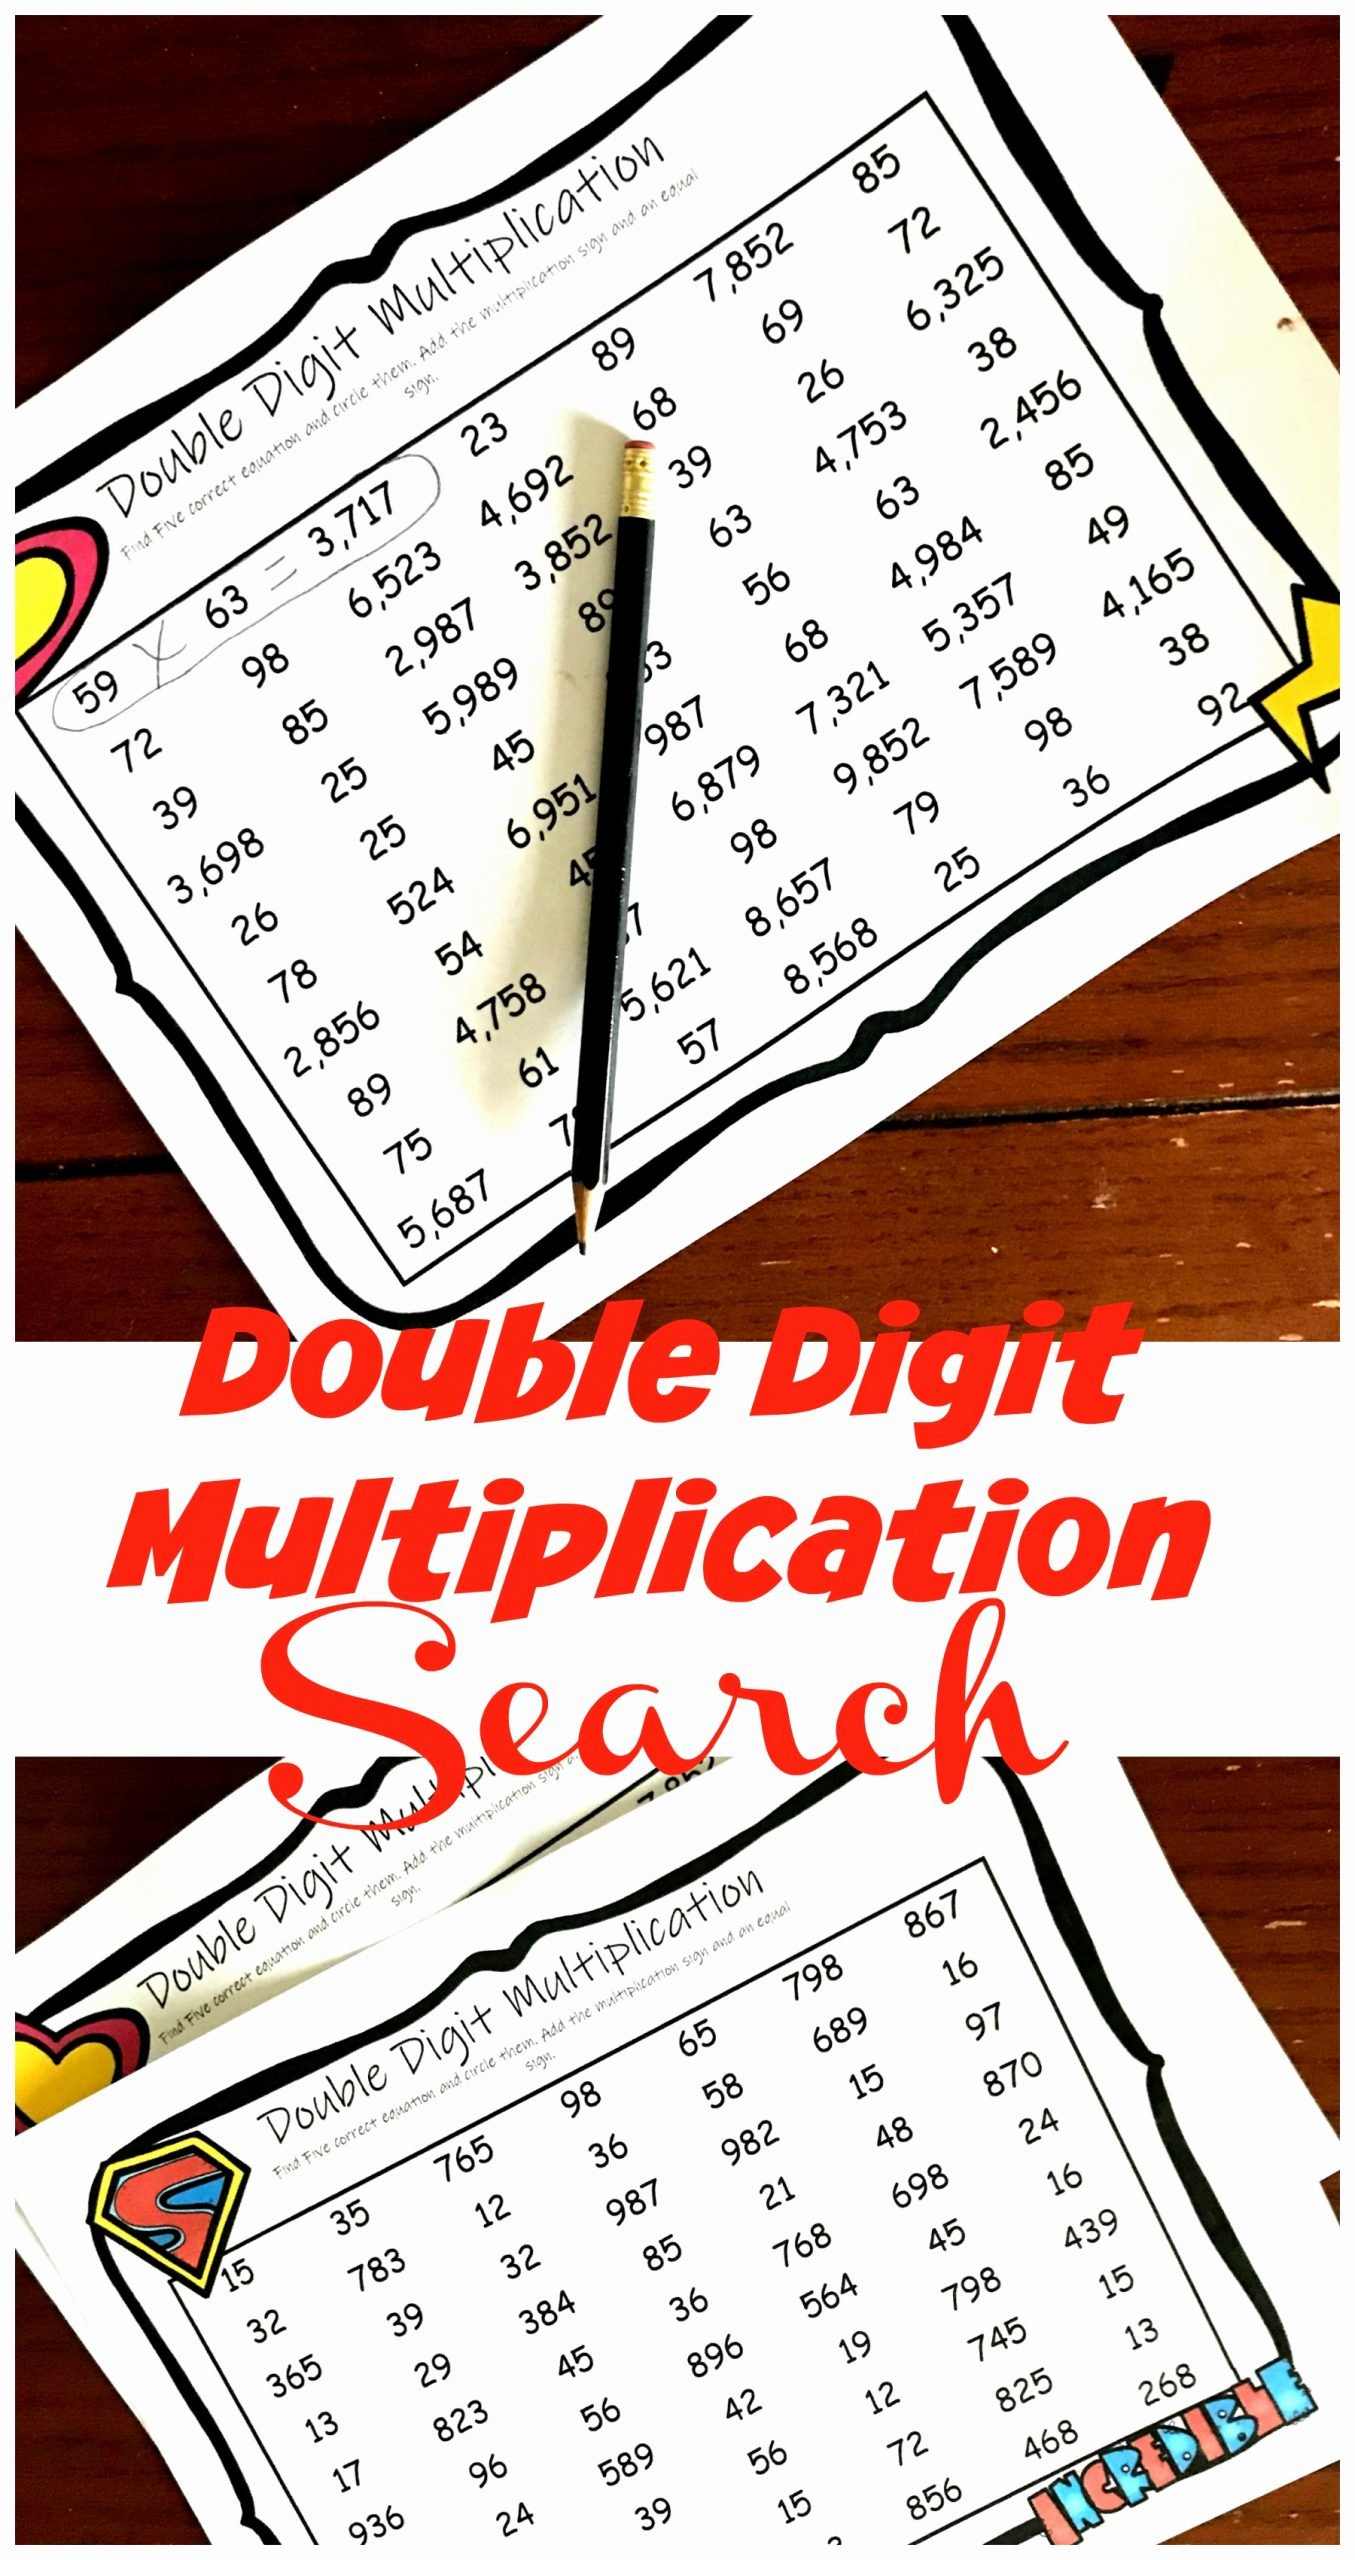 Two Digit Multiplication Worksheets Inspirational Free Two Digit Multiplication Worksheets with A Fun Twist